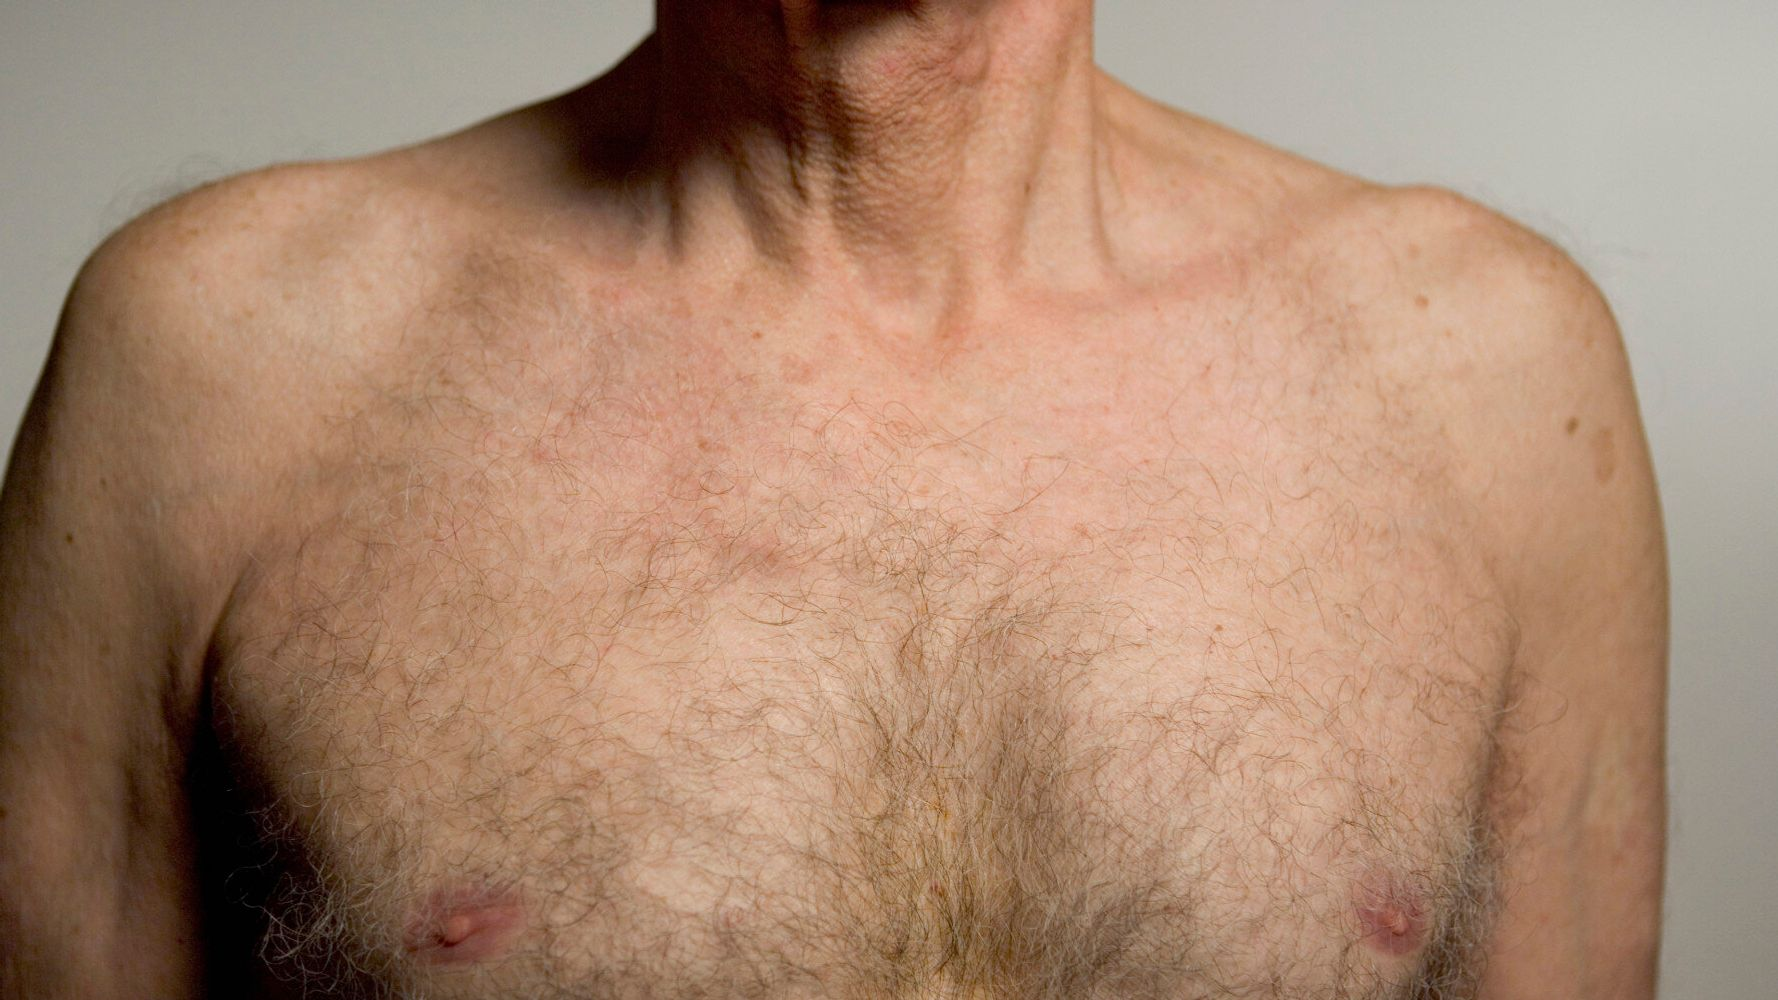 Male Breast Cancer How To Spot The Symptoms Plus What Happens